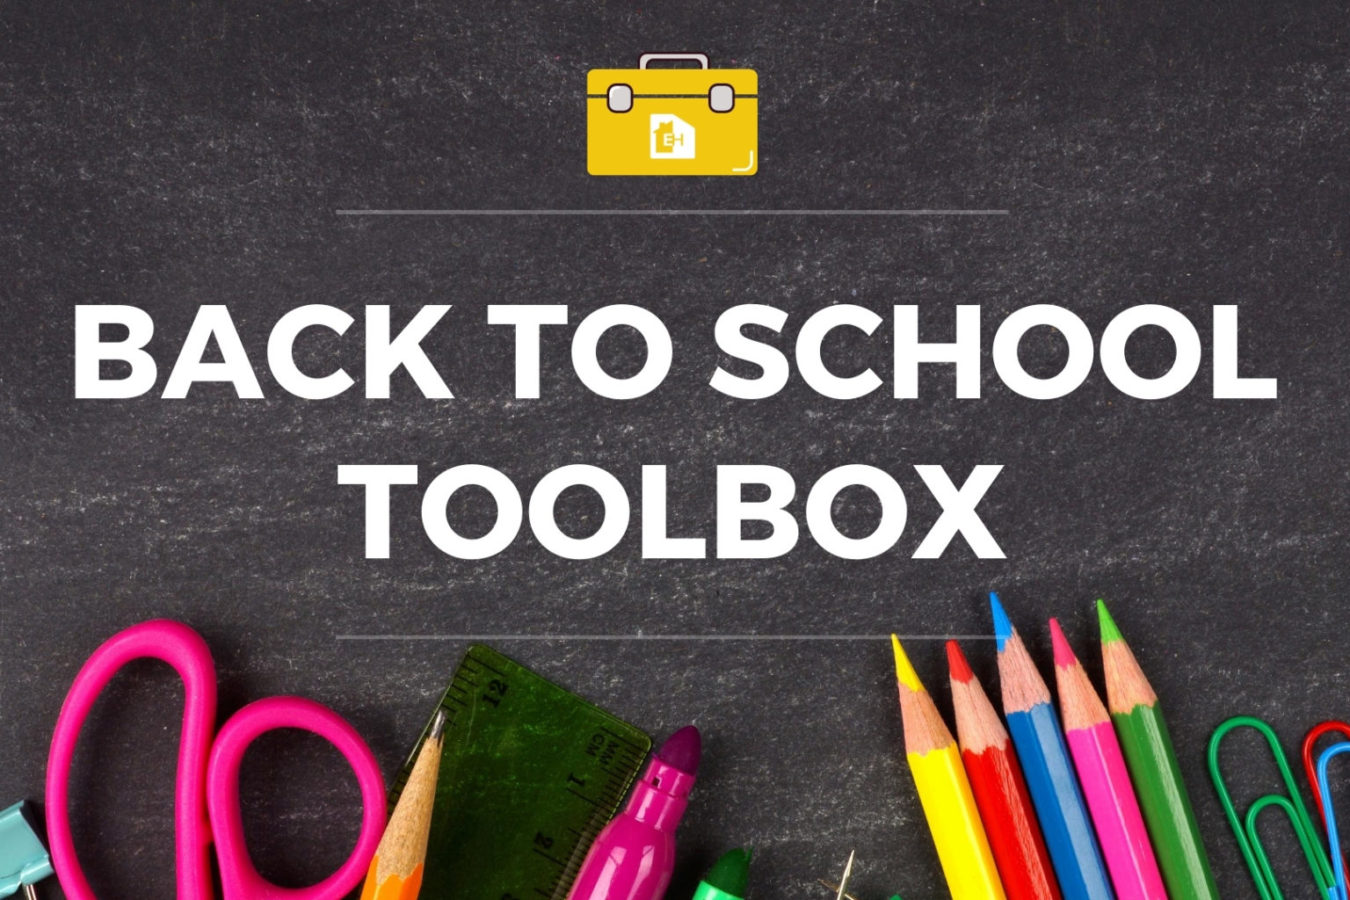 Back to School Toolbox